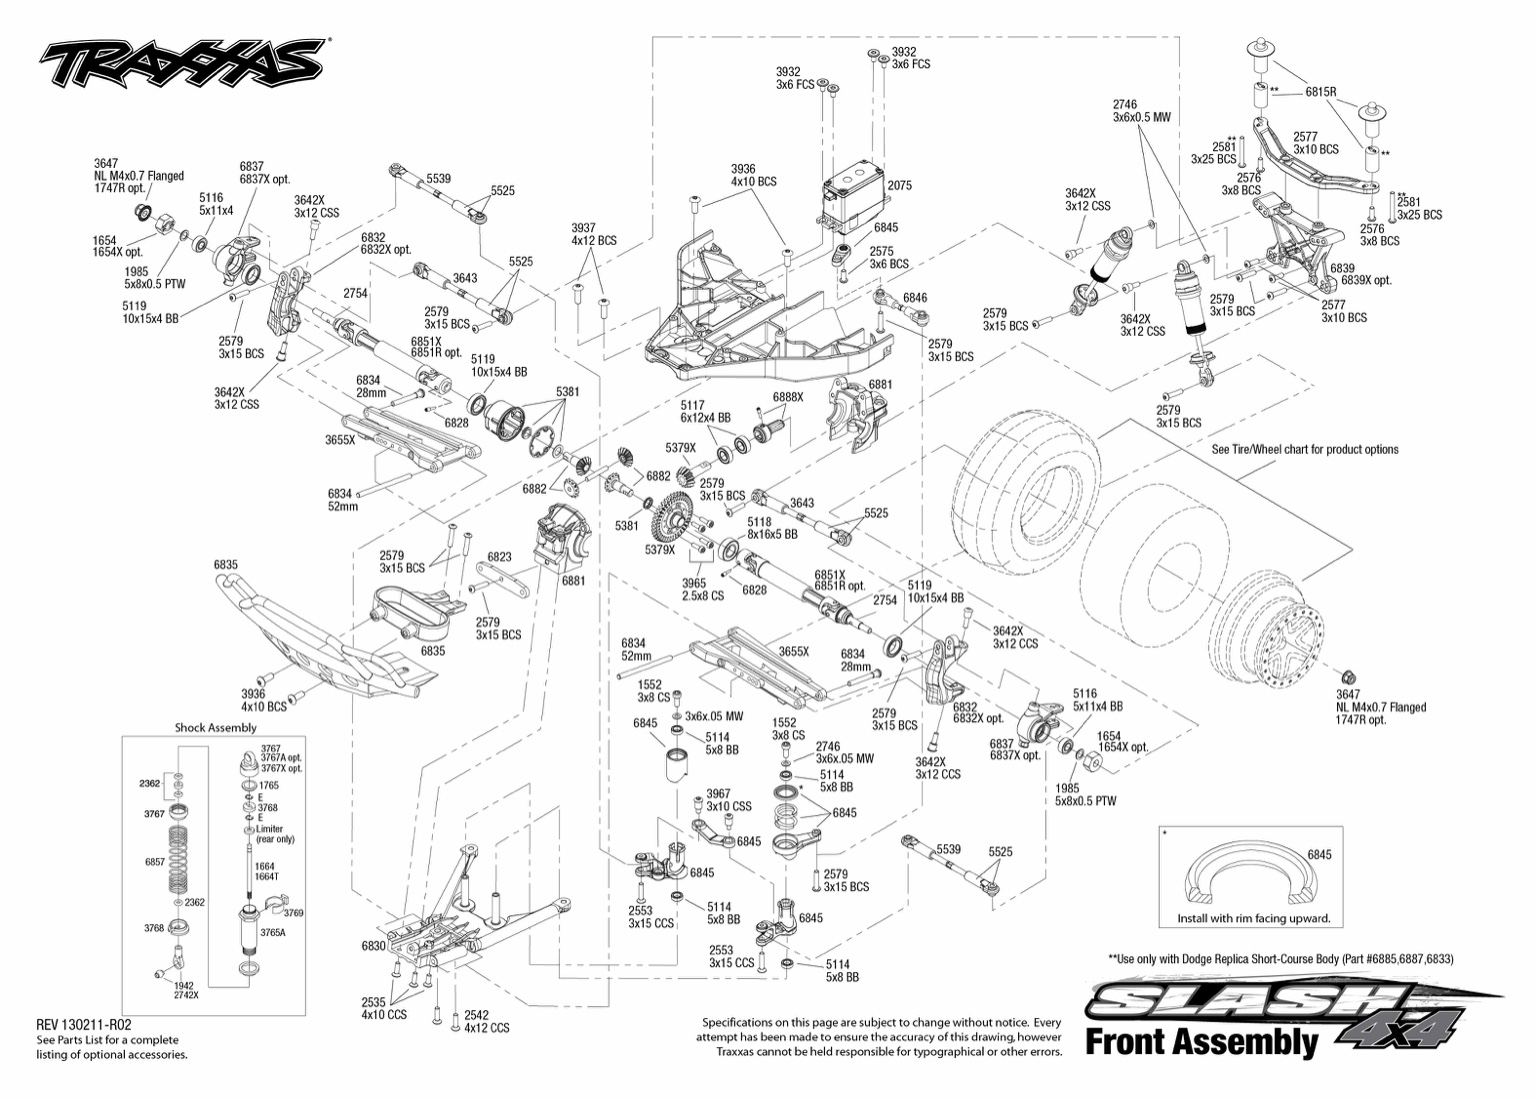 Traxxas Stampede 4x4 Vxl Diagram Wiring Diagrams For Dummies Gearing Chart Slash Speed Looking Some Info Rh Forums Com Parts